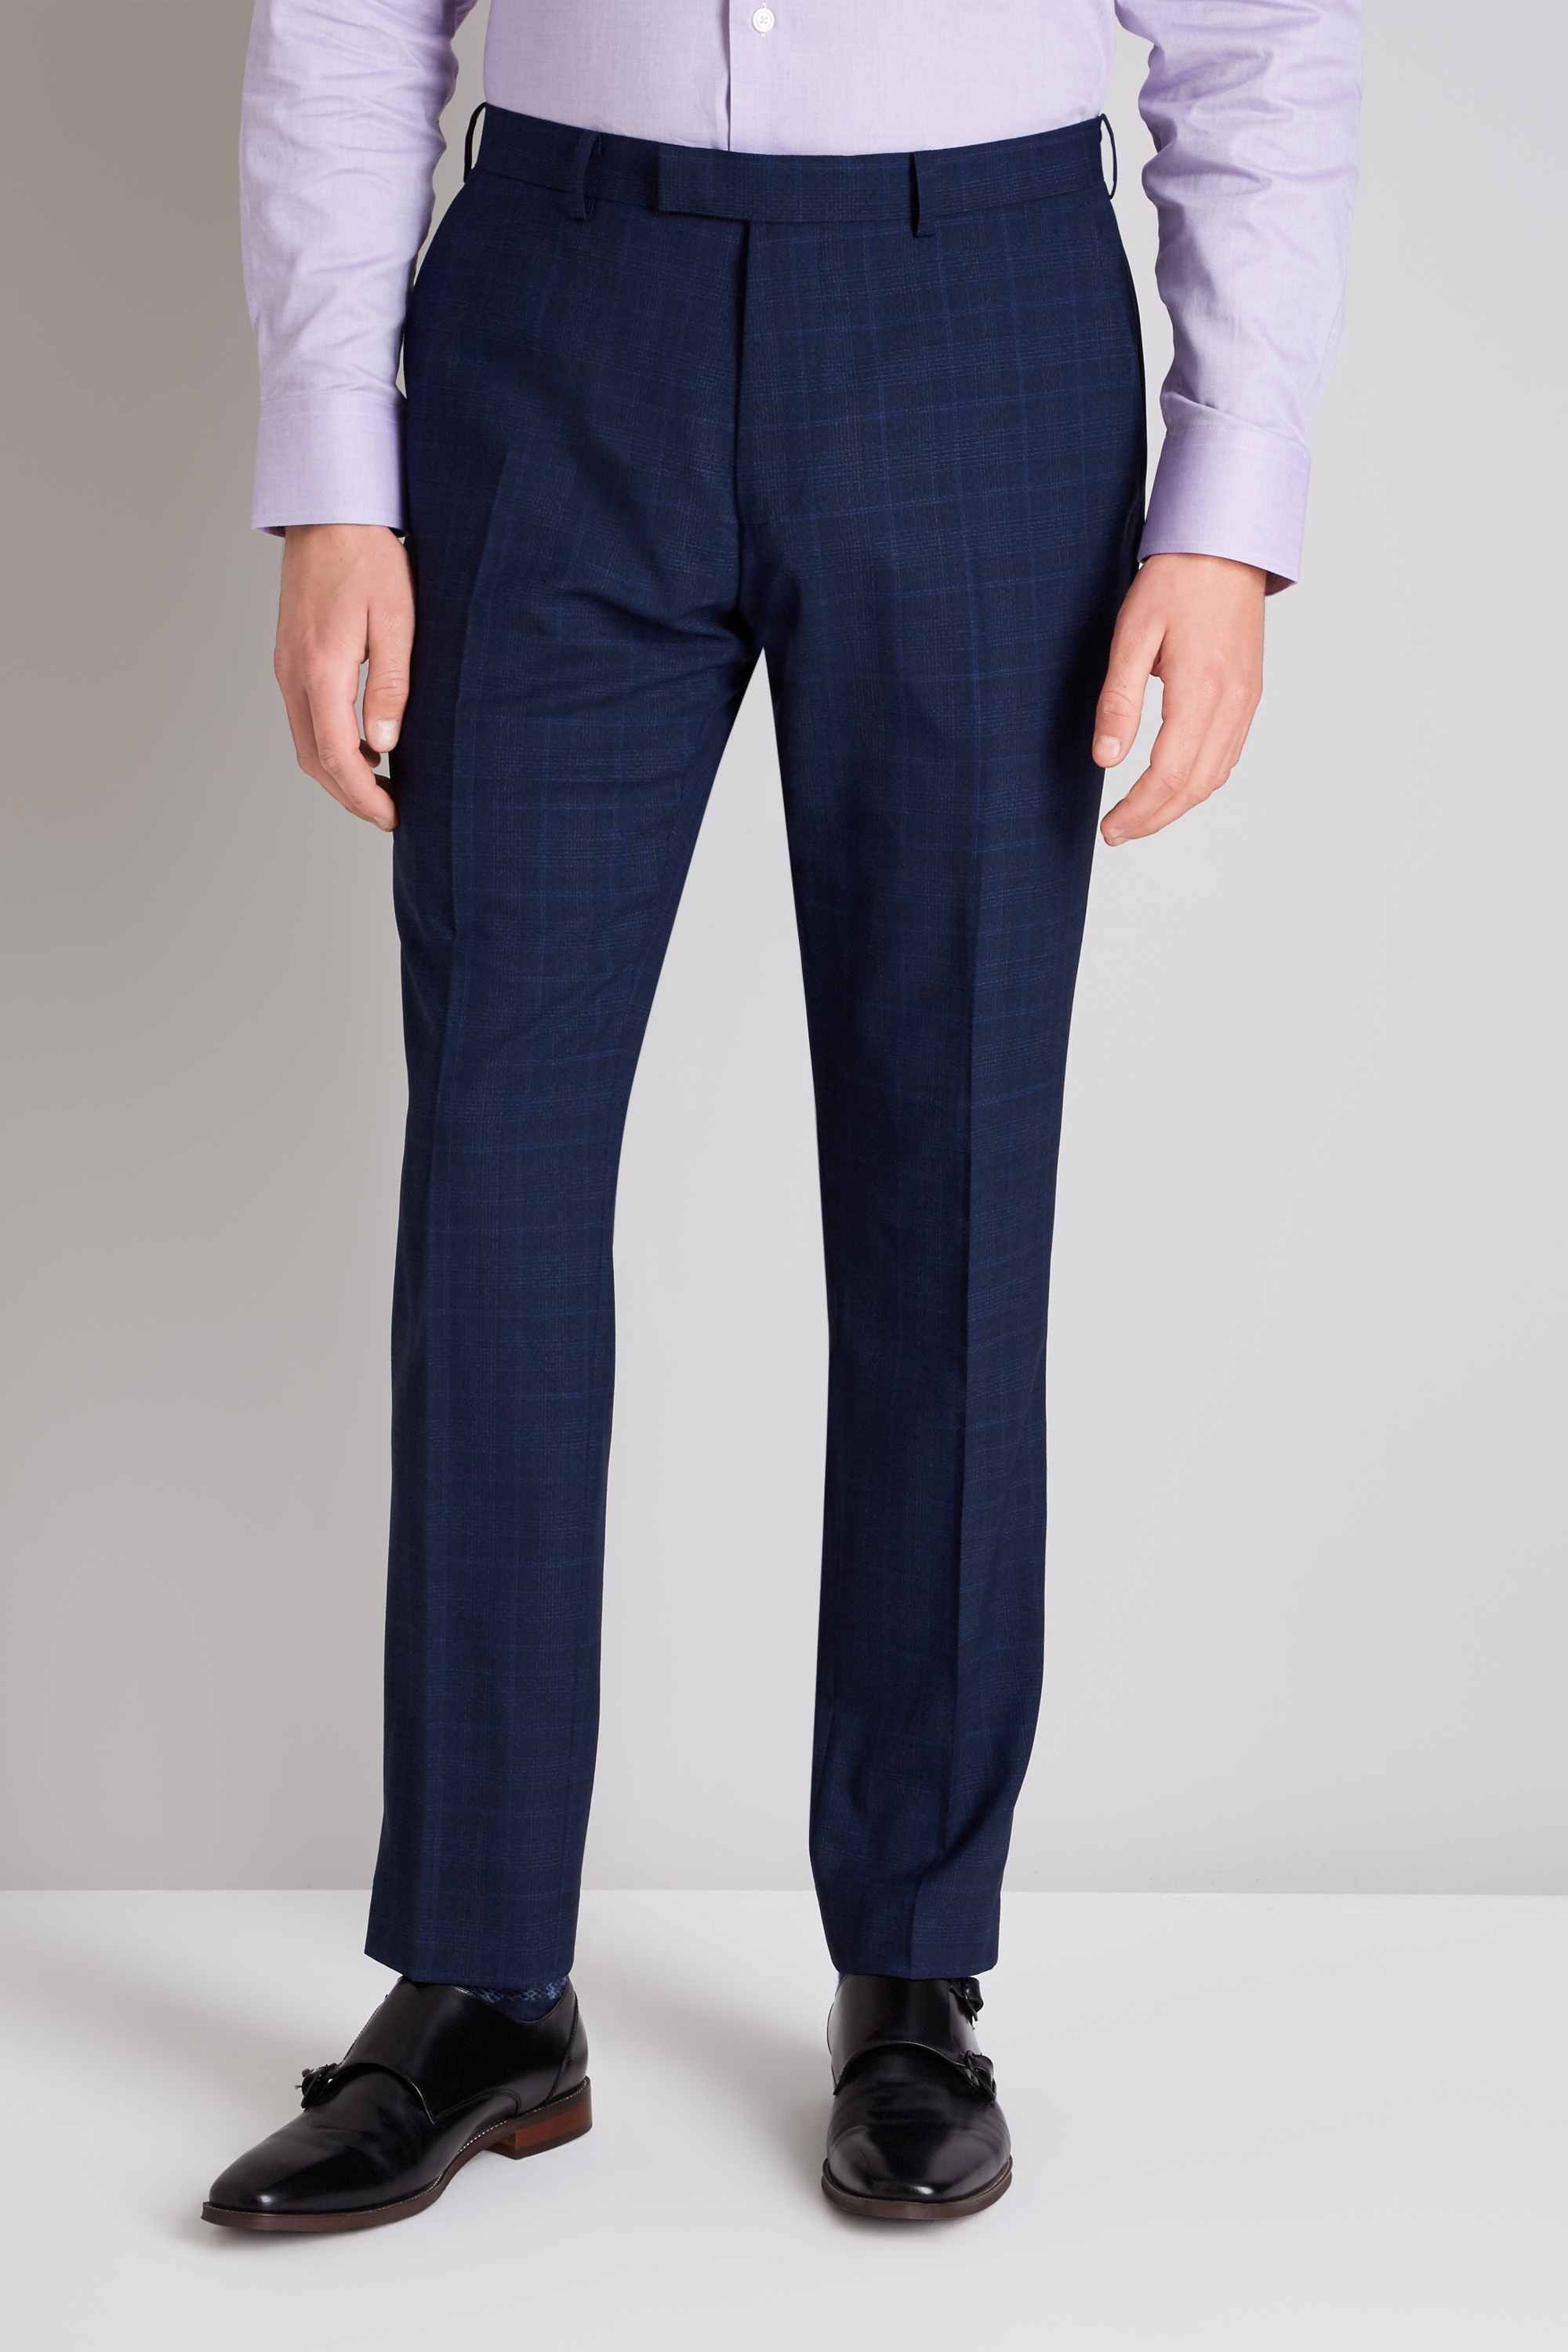 Men/'s The collection Navy Broken Check Tailored Fit Suit 42S W36 L29 RRP£129.00